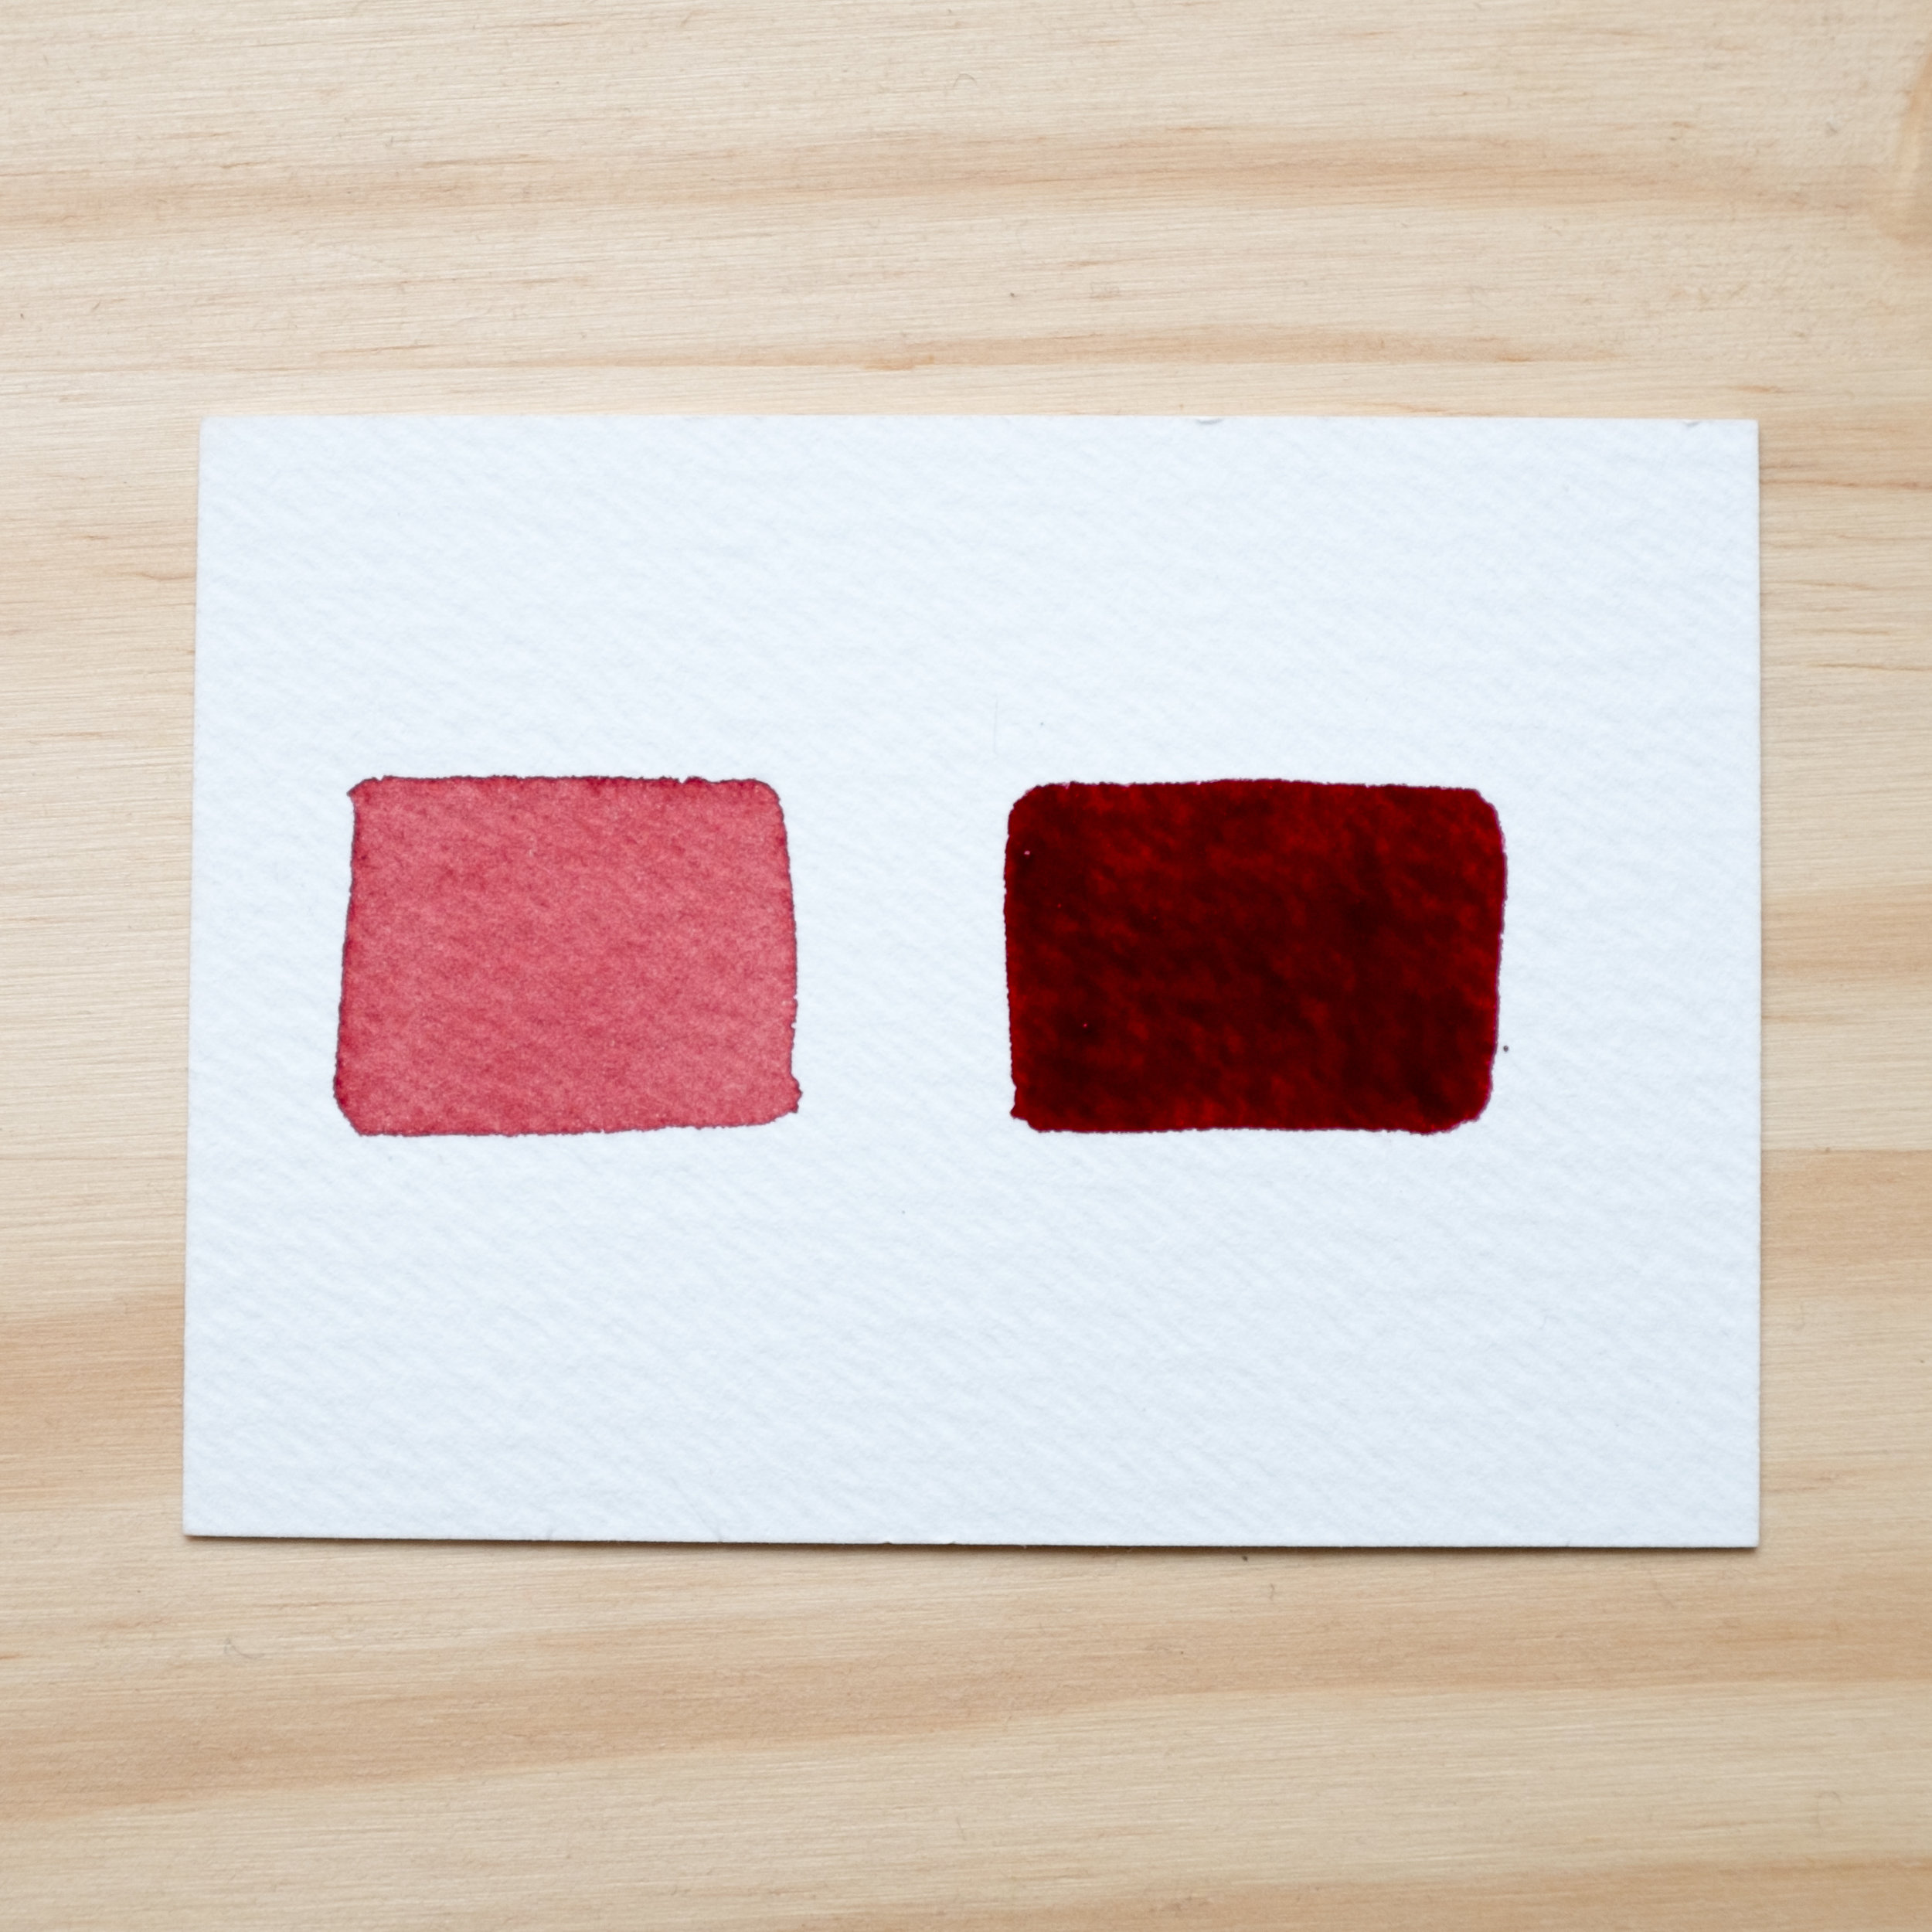 Dry Perylene Maroon on the left, and wet perylene maroon on the right with heavier pigment load